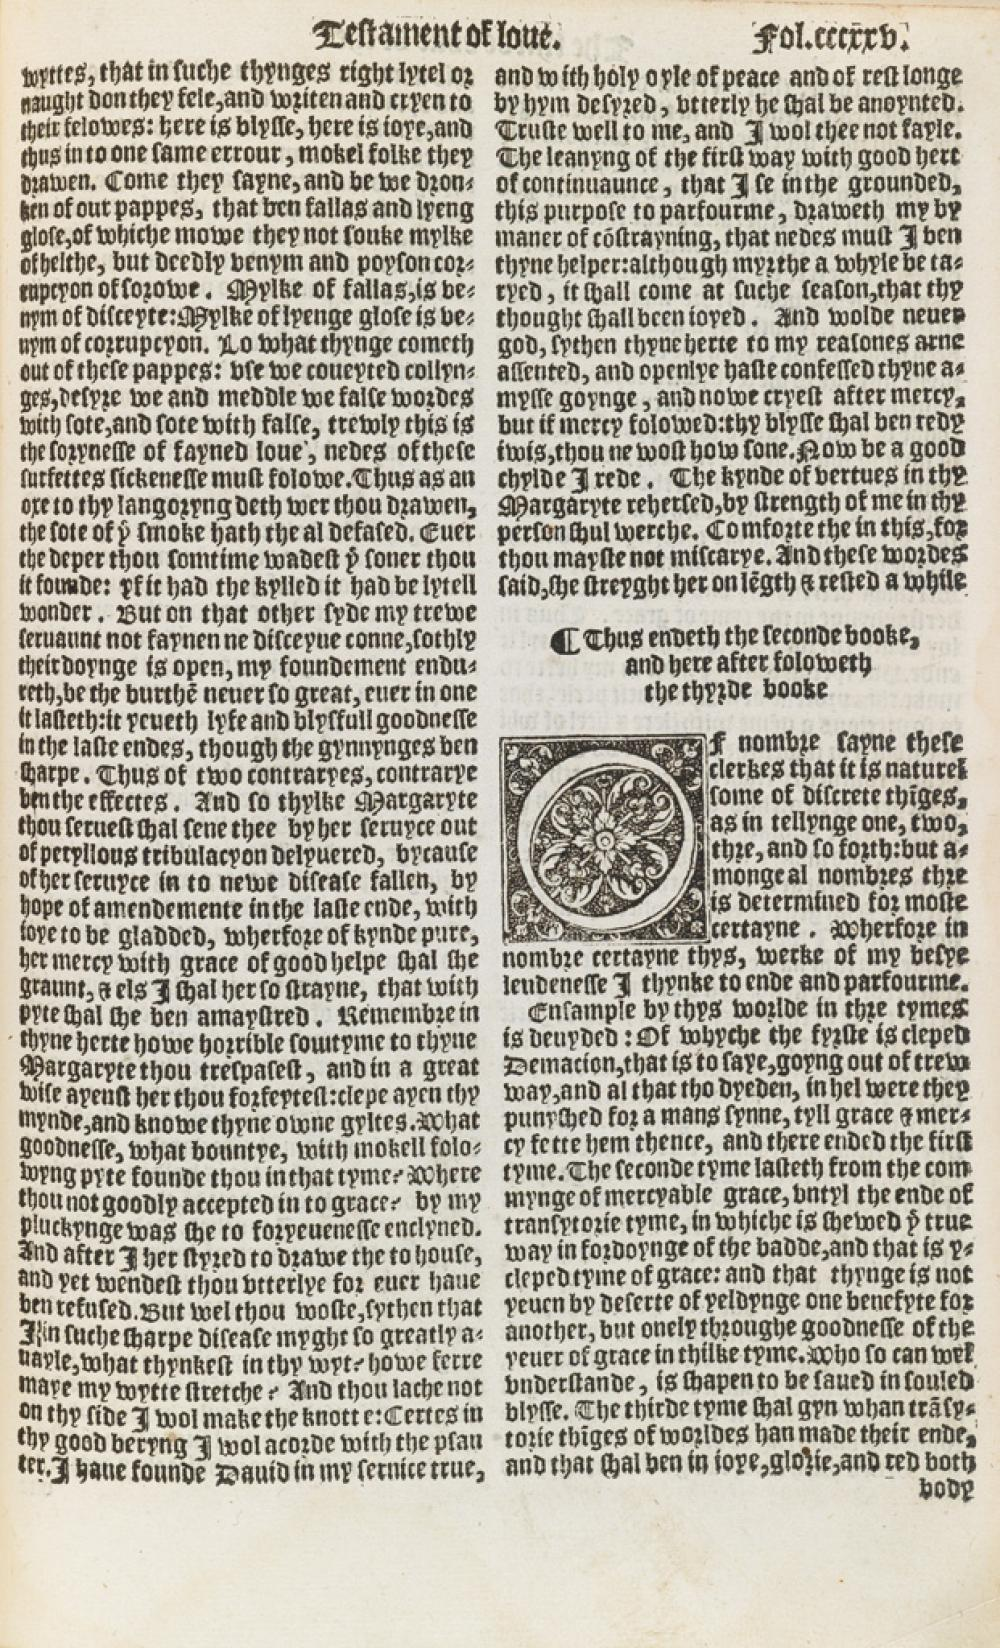 (LEAF BOOKS.) Chaucer, Geoffrey. Two Chaucer Leaves.